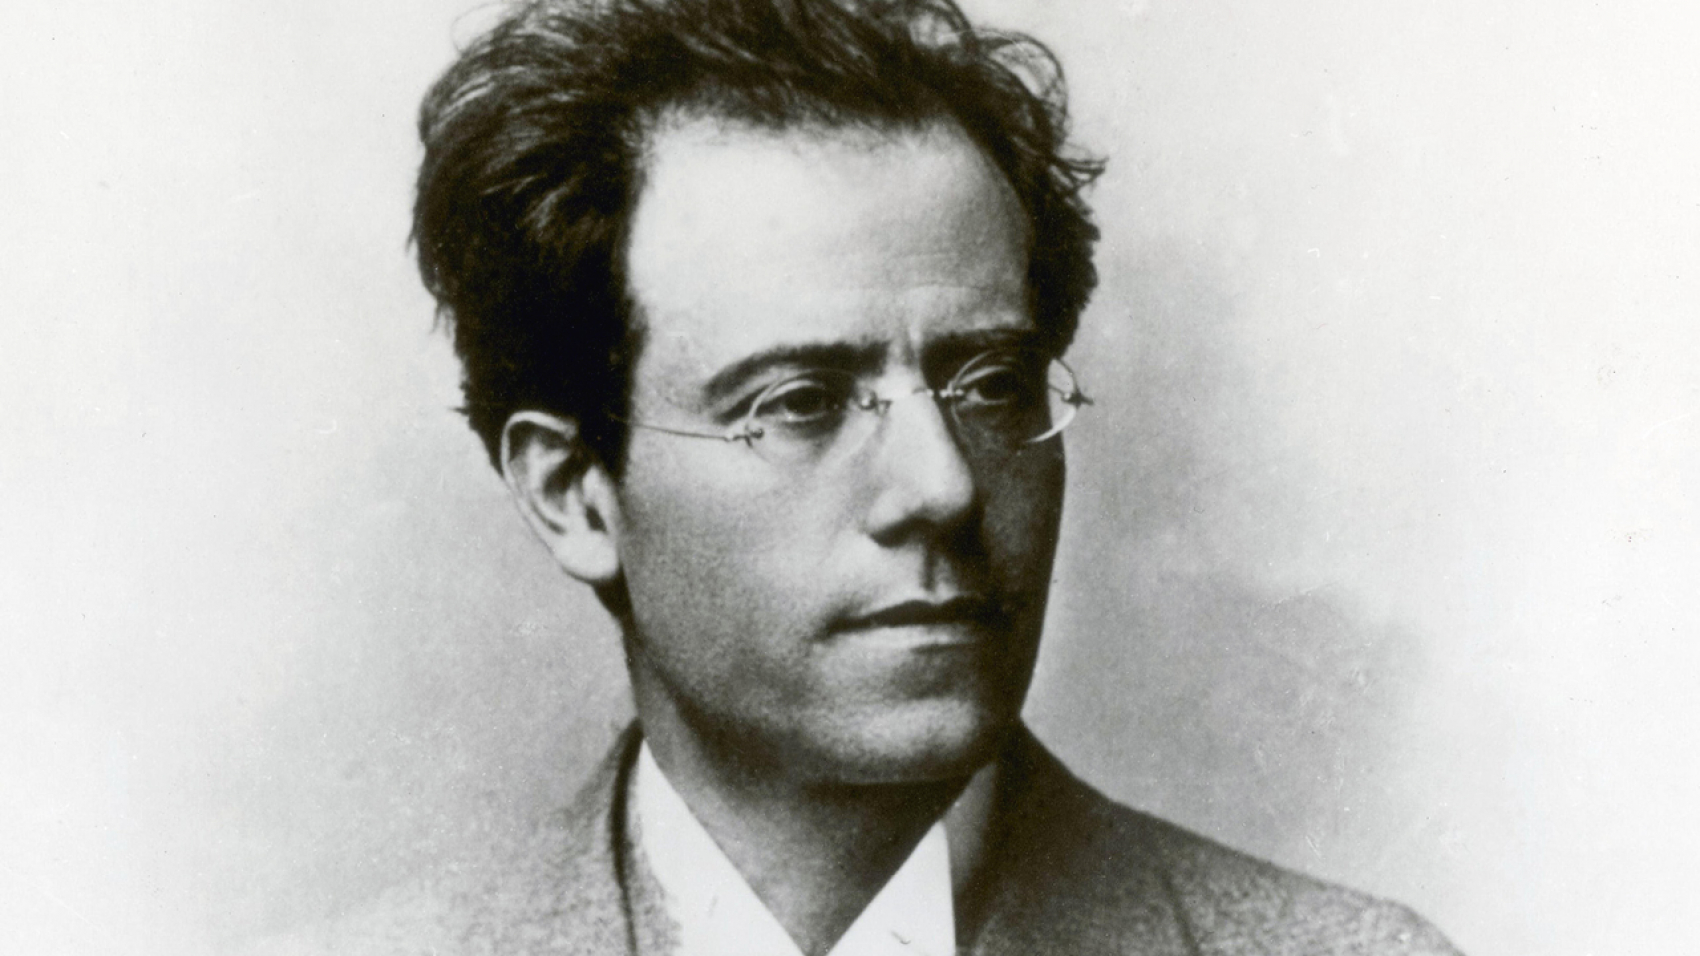 Mahler 7 conducted by Marc Albrecht